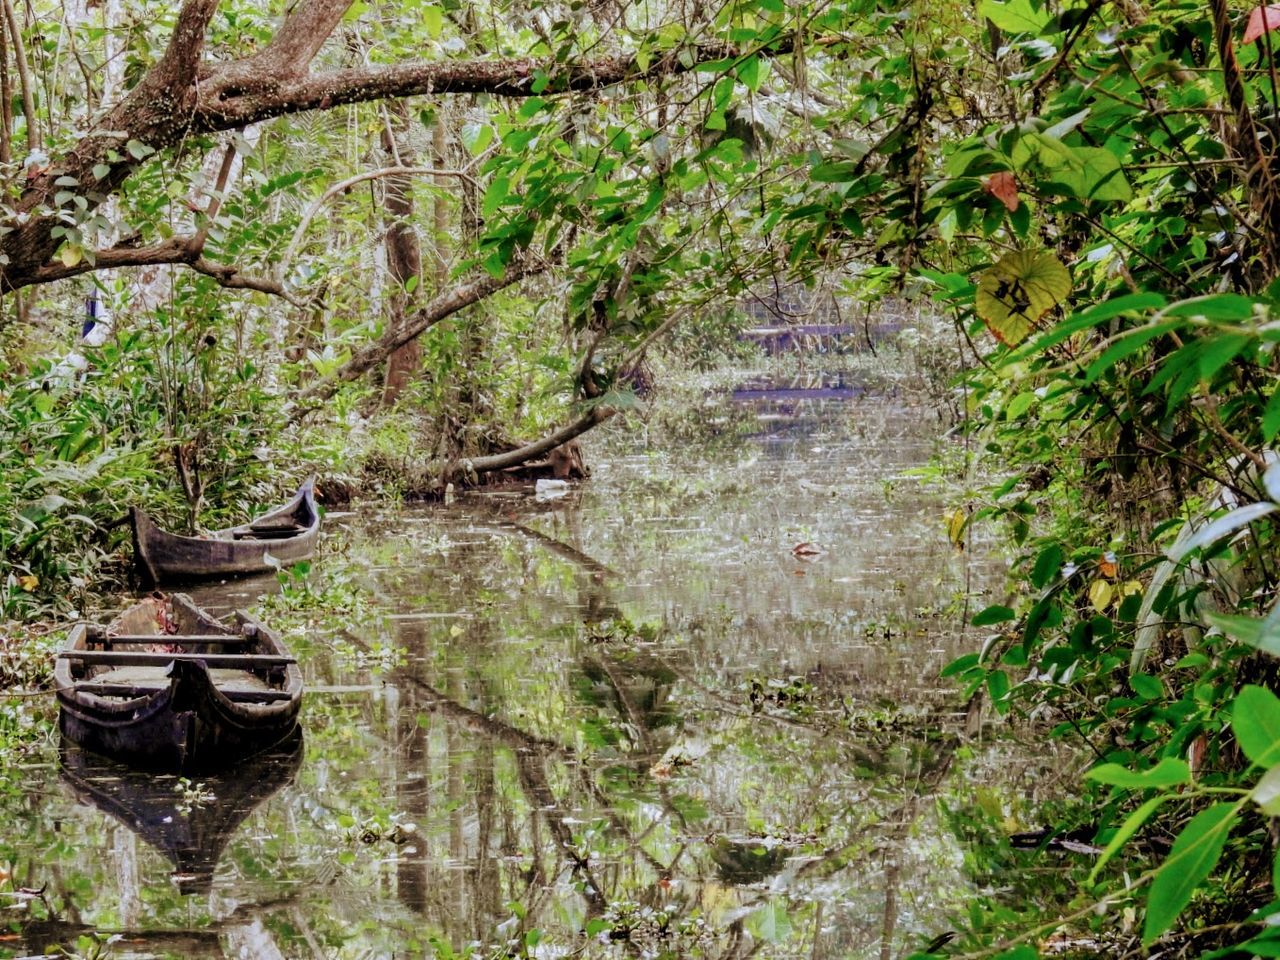 Boats in a a site moving stream at the Kumarakom Bird Sanctuary Nature Outdoors Tree Tranquility Tranquil Scene No People Growth Plant Day Water Kumarakom Bird Sanctuary Kerala India Boats Stream